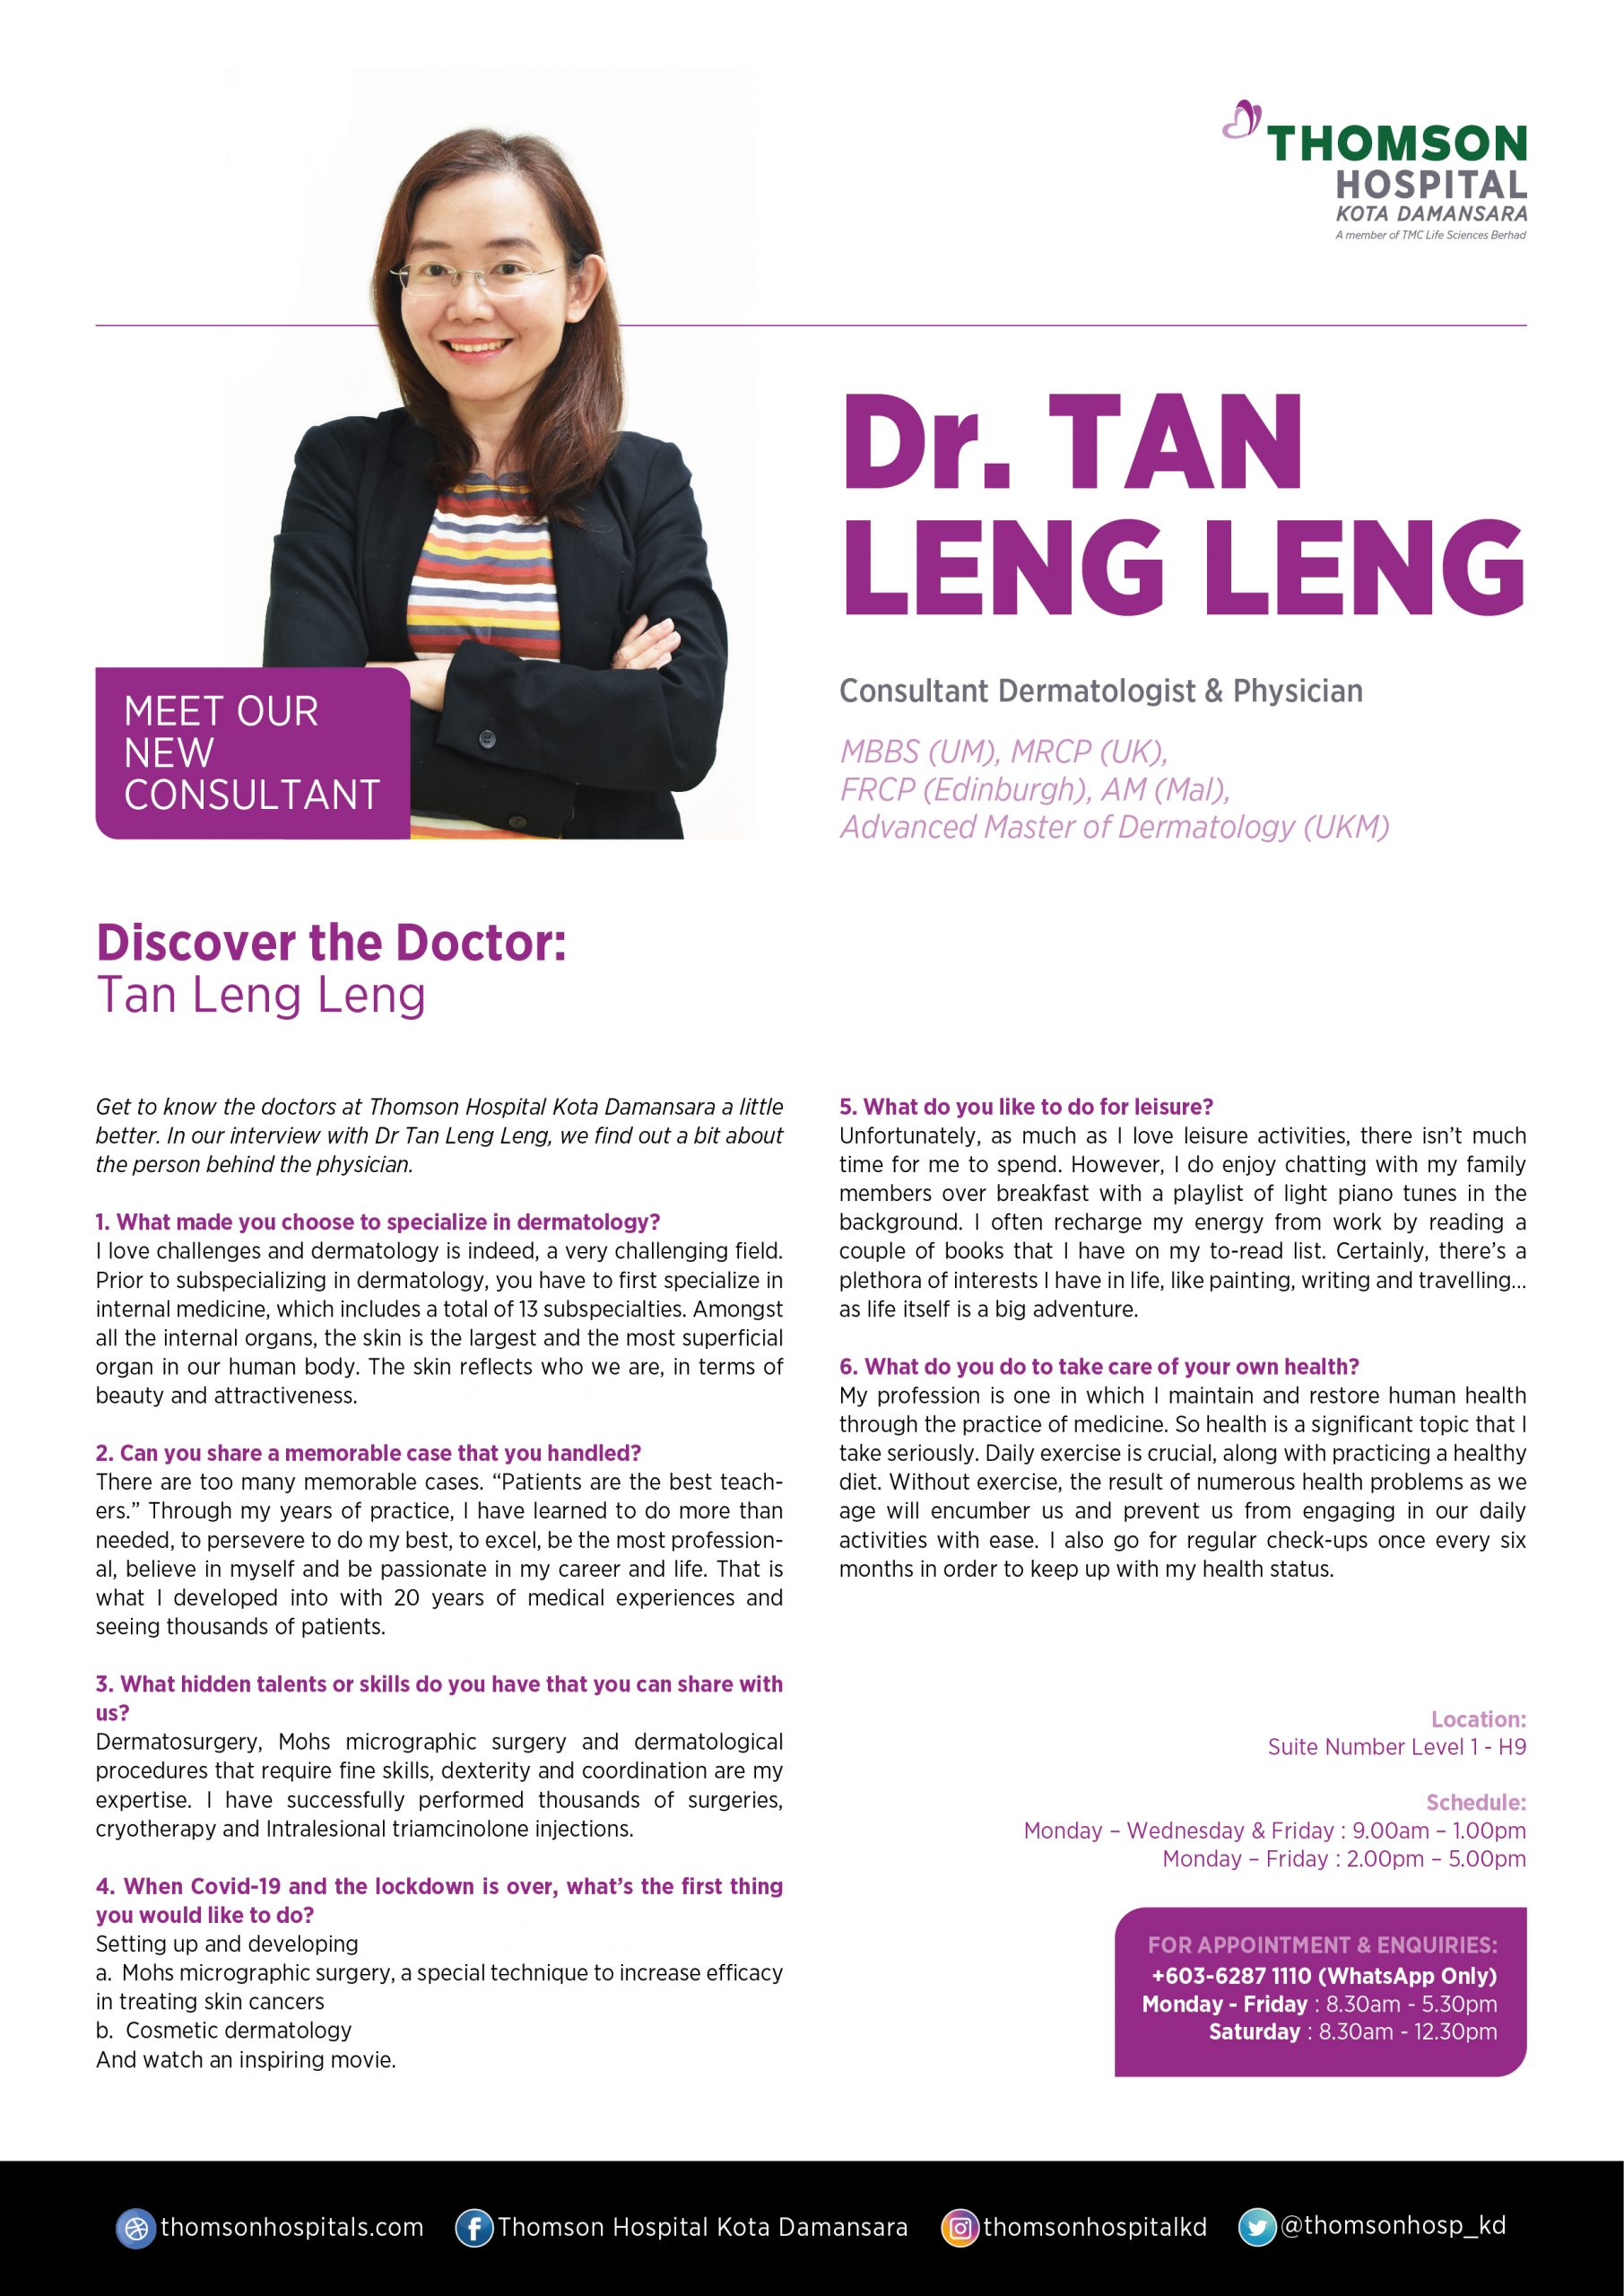 Dr Tan Leng Leng Know about Doctor